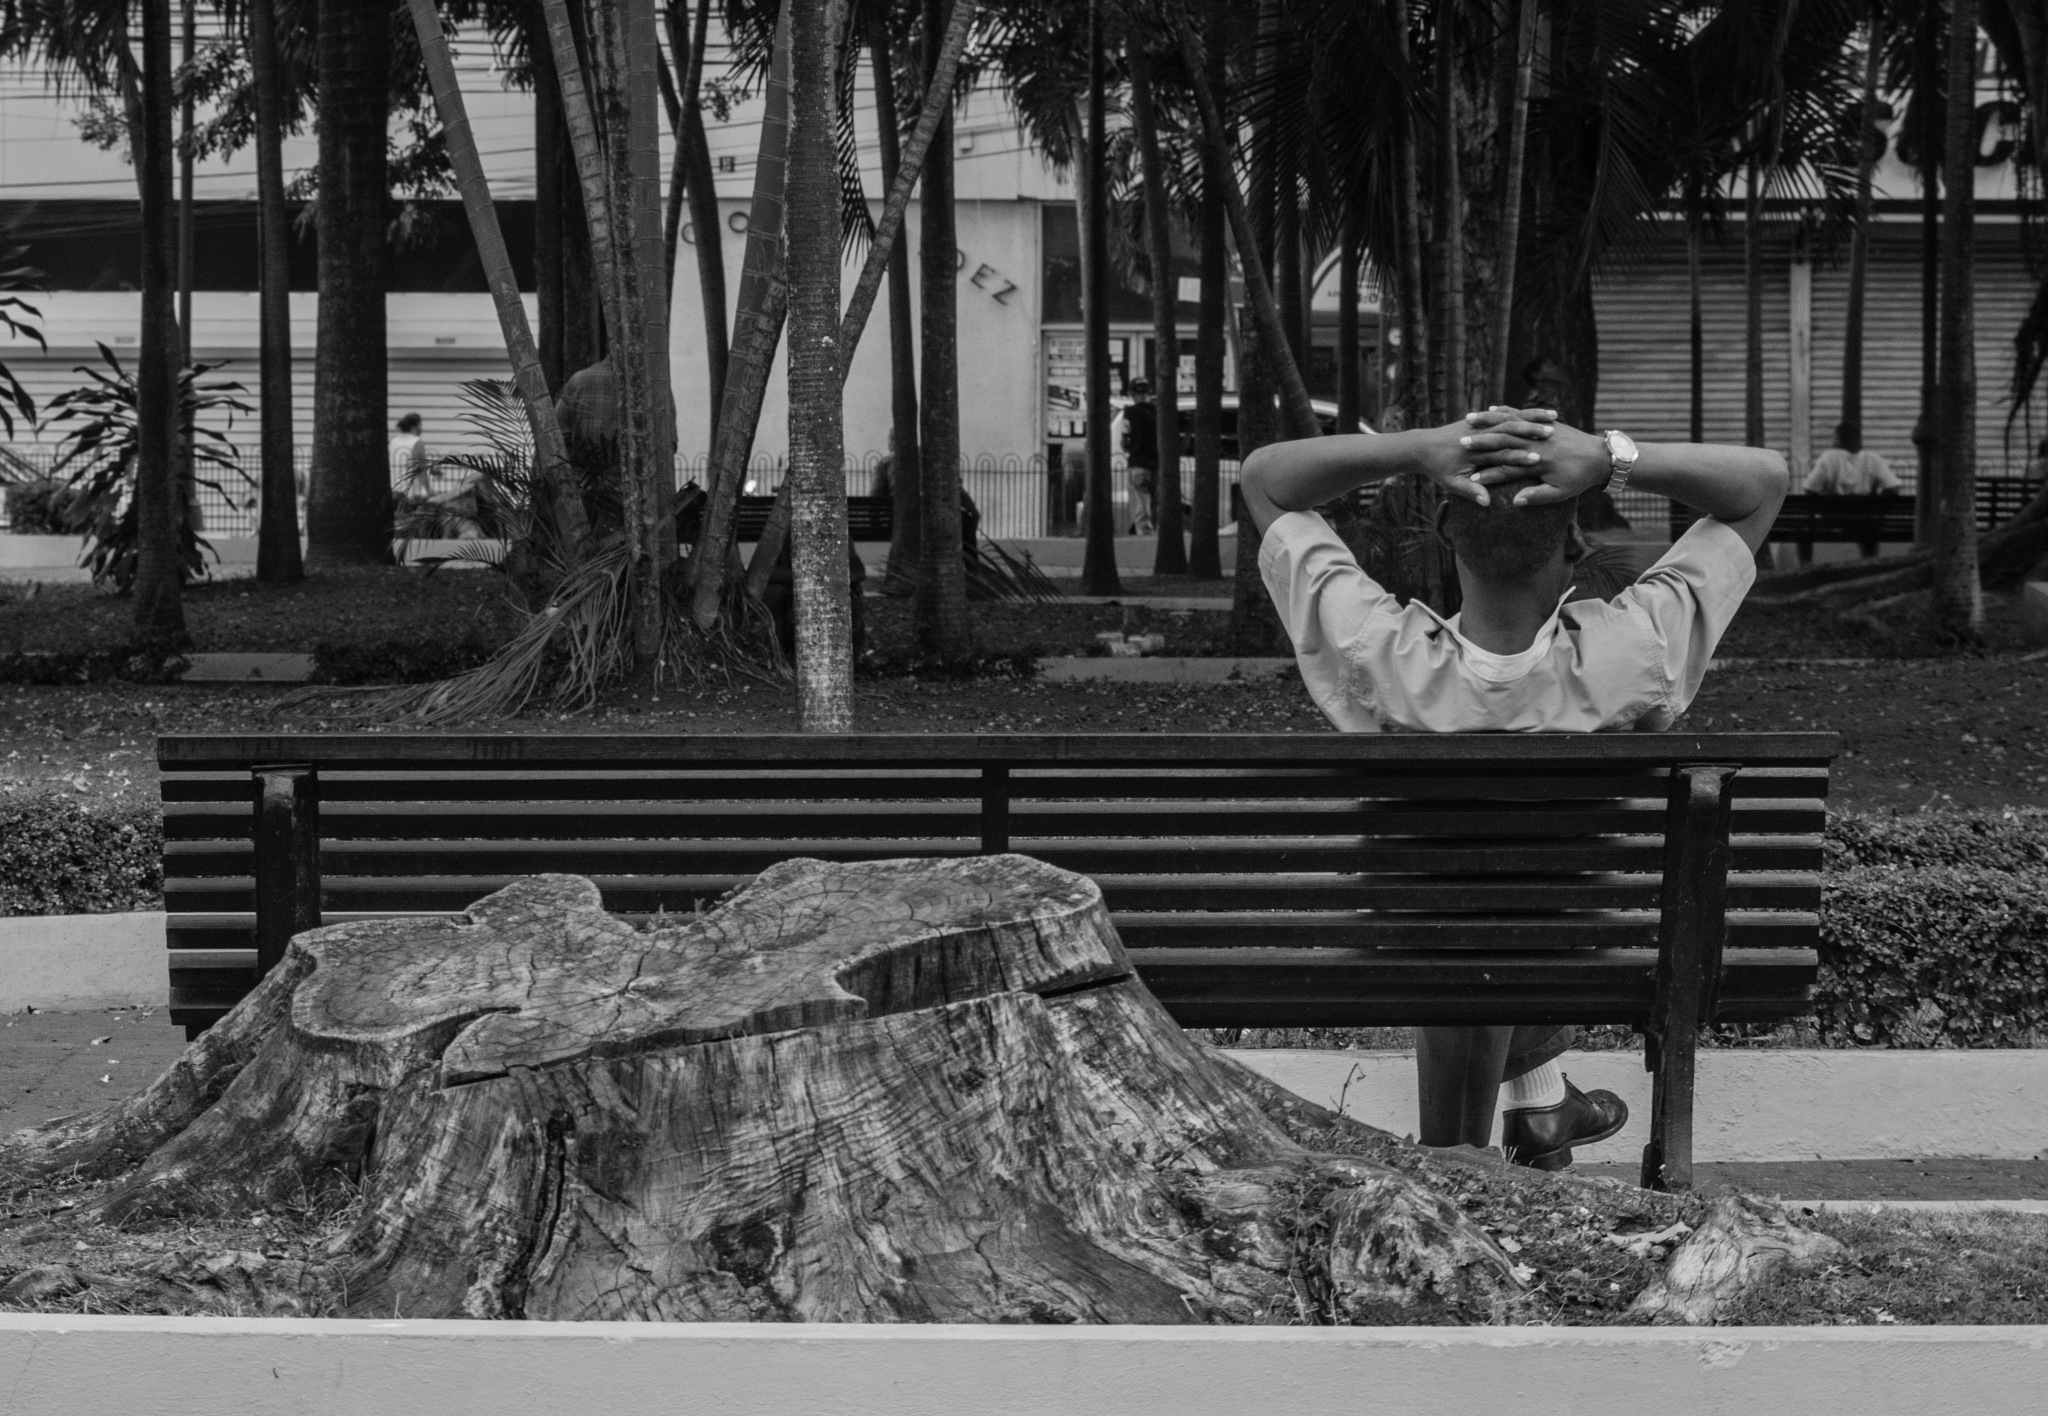 chilling by Miguel Noboa